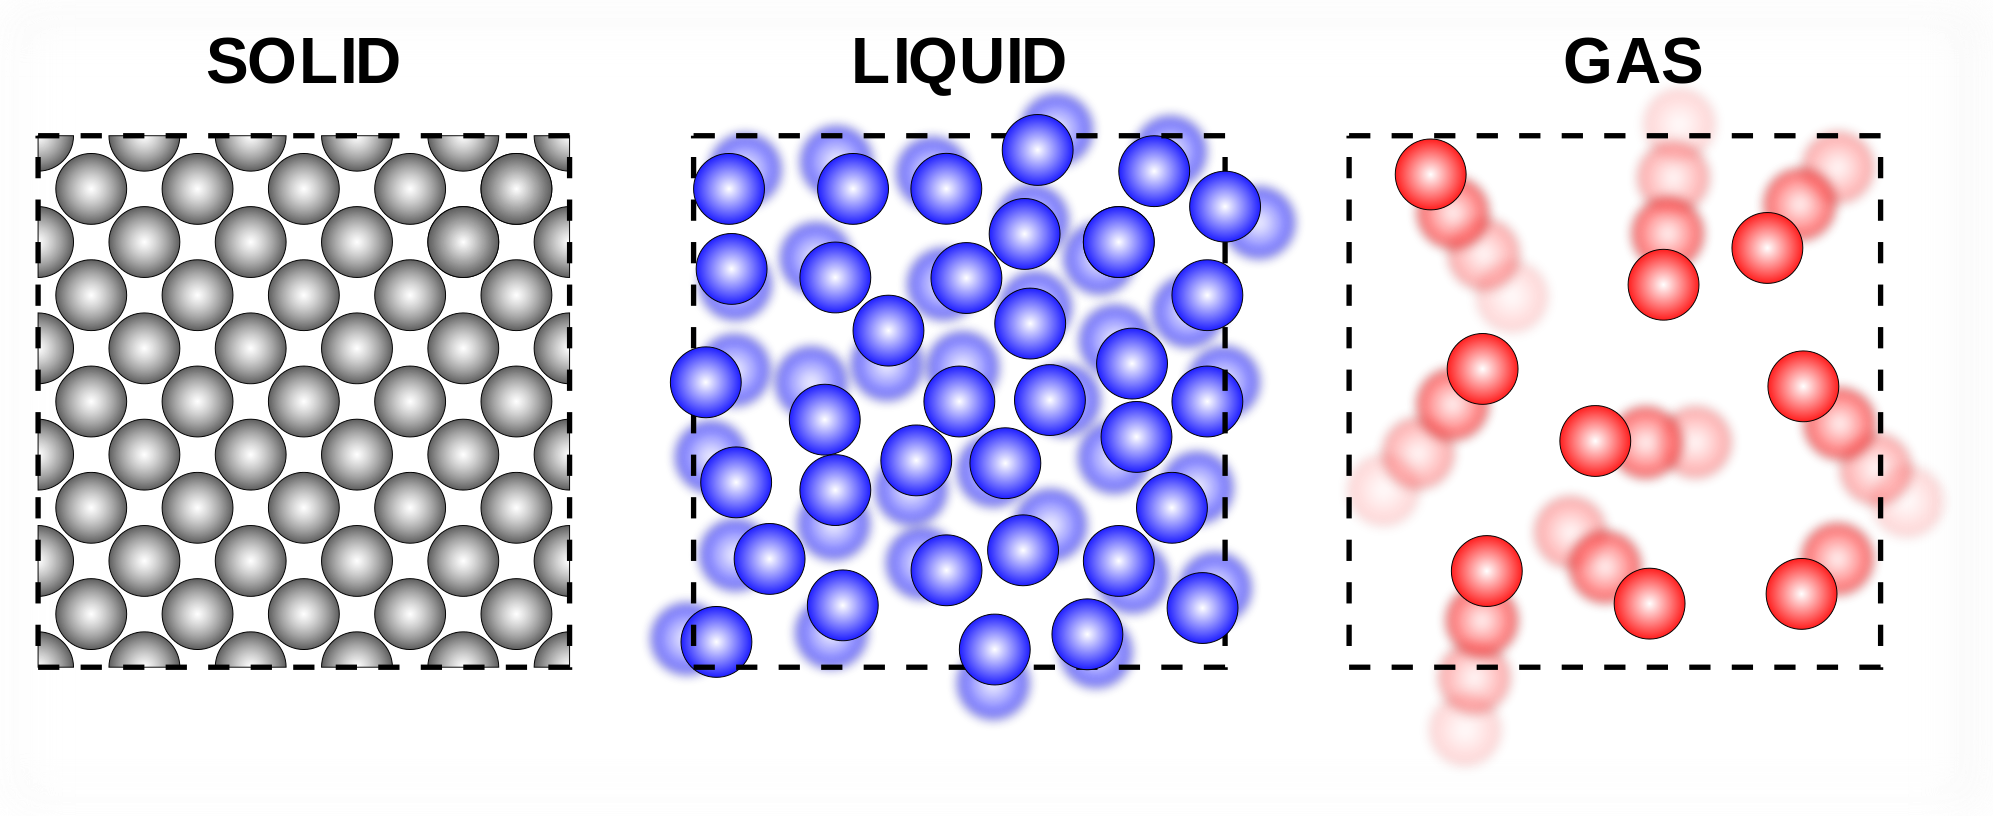 Image result for solid liquid gas (http://upload.wikimedia.org/wikiversity/en/thumb/8/88/Phases_of_matter.svg/1993px-Phases_of_matter.svg.png)